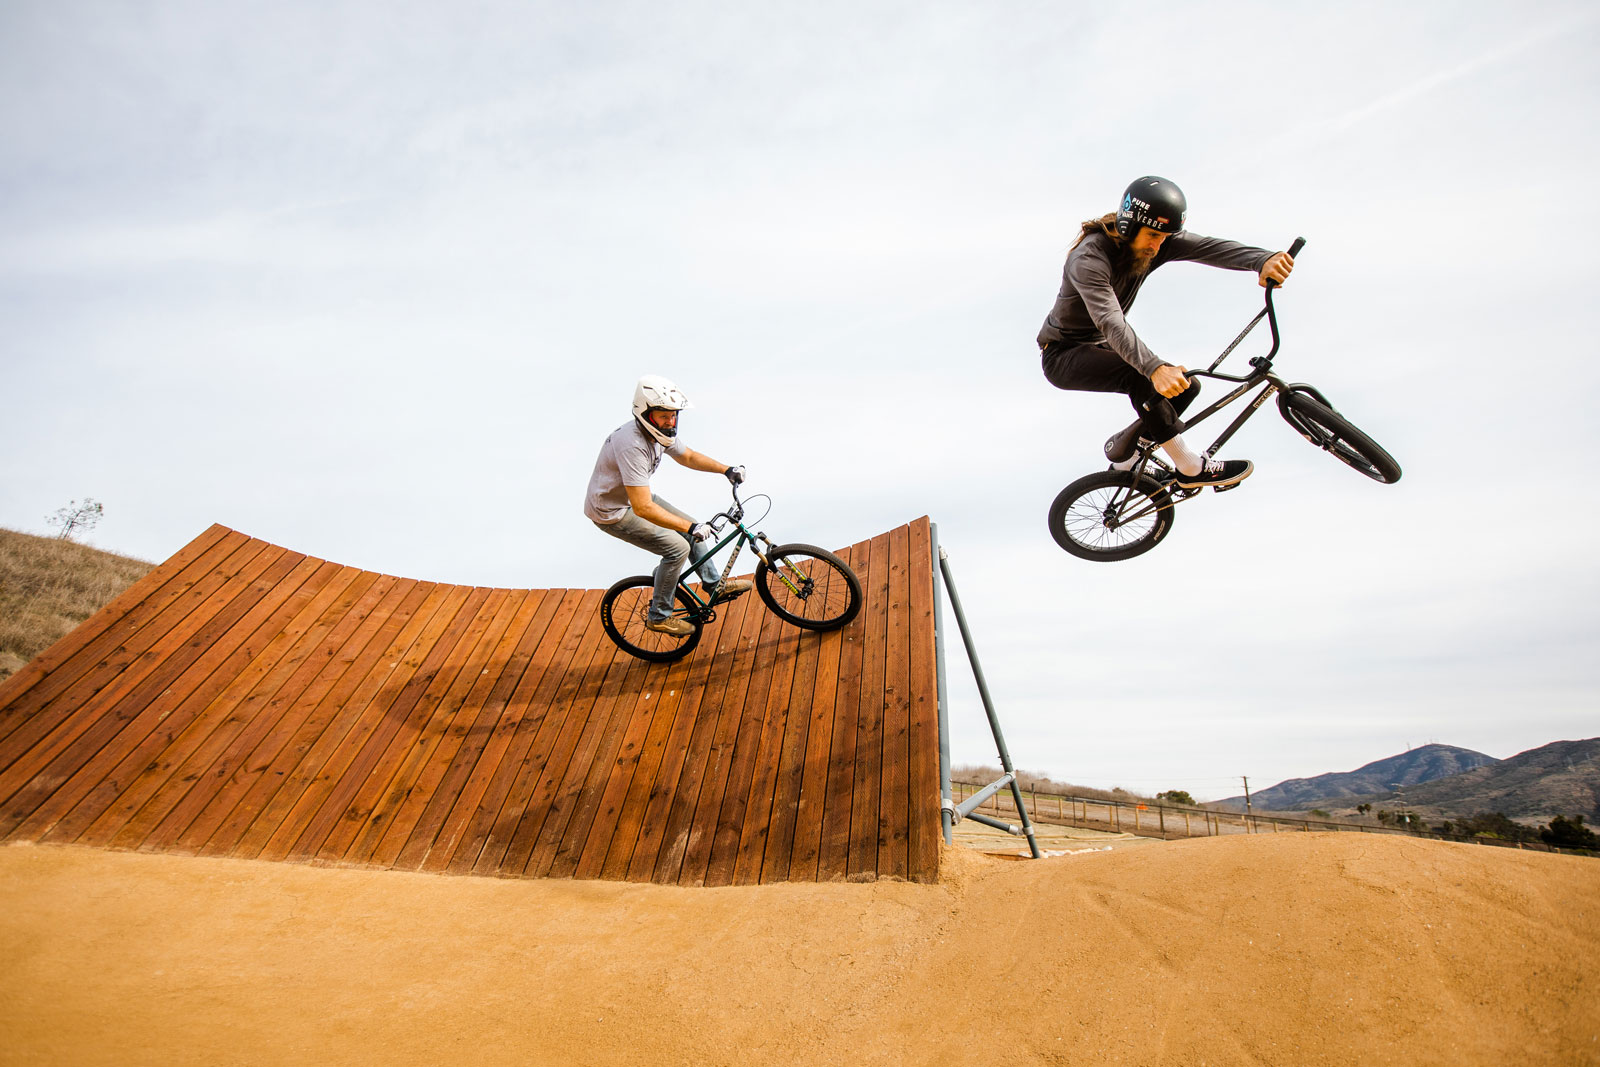 Two mountain bike riders on a jump track. One catching air.